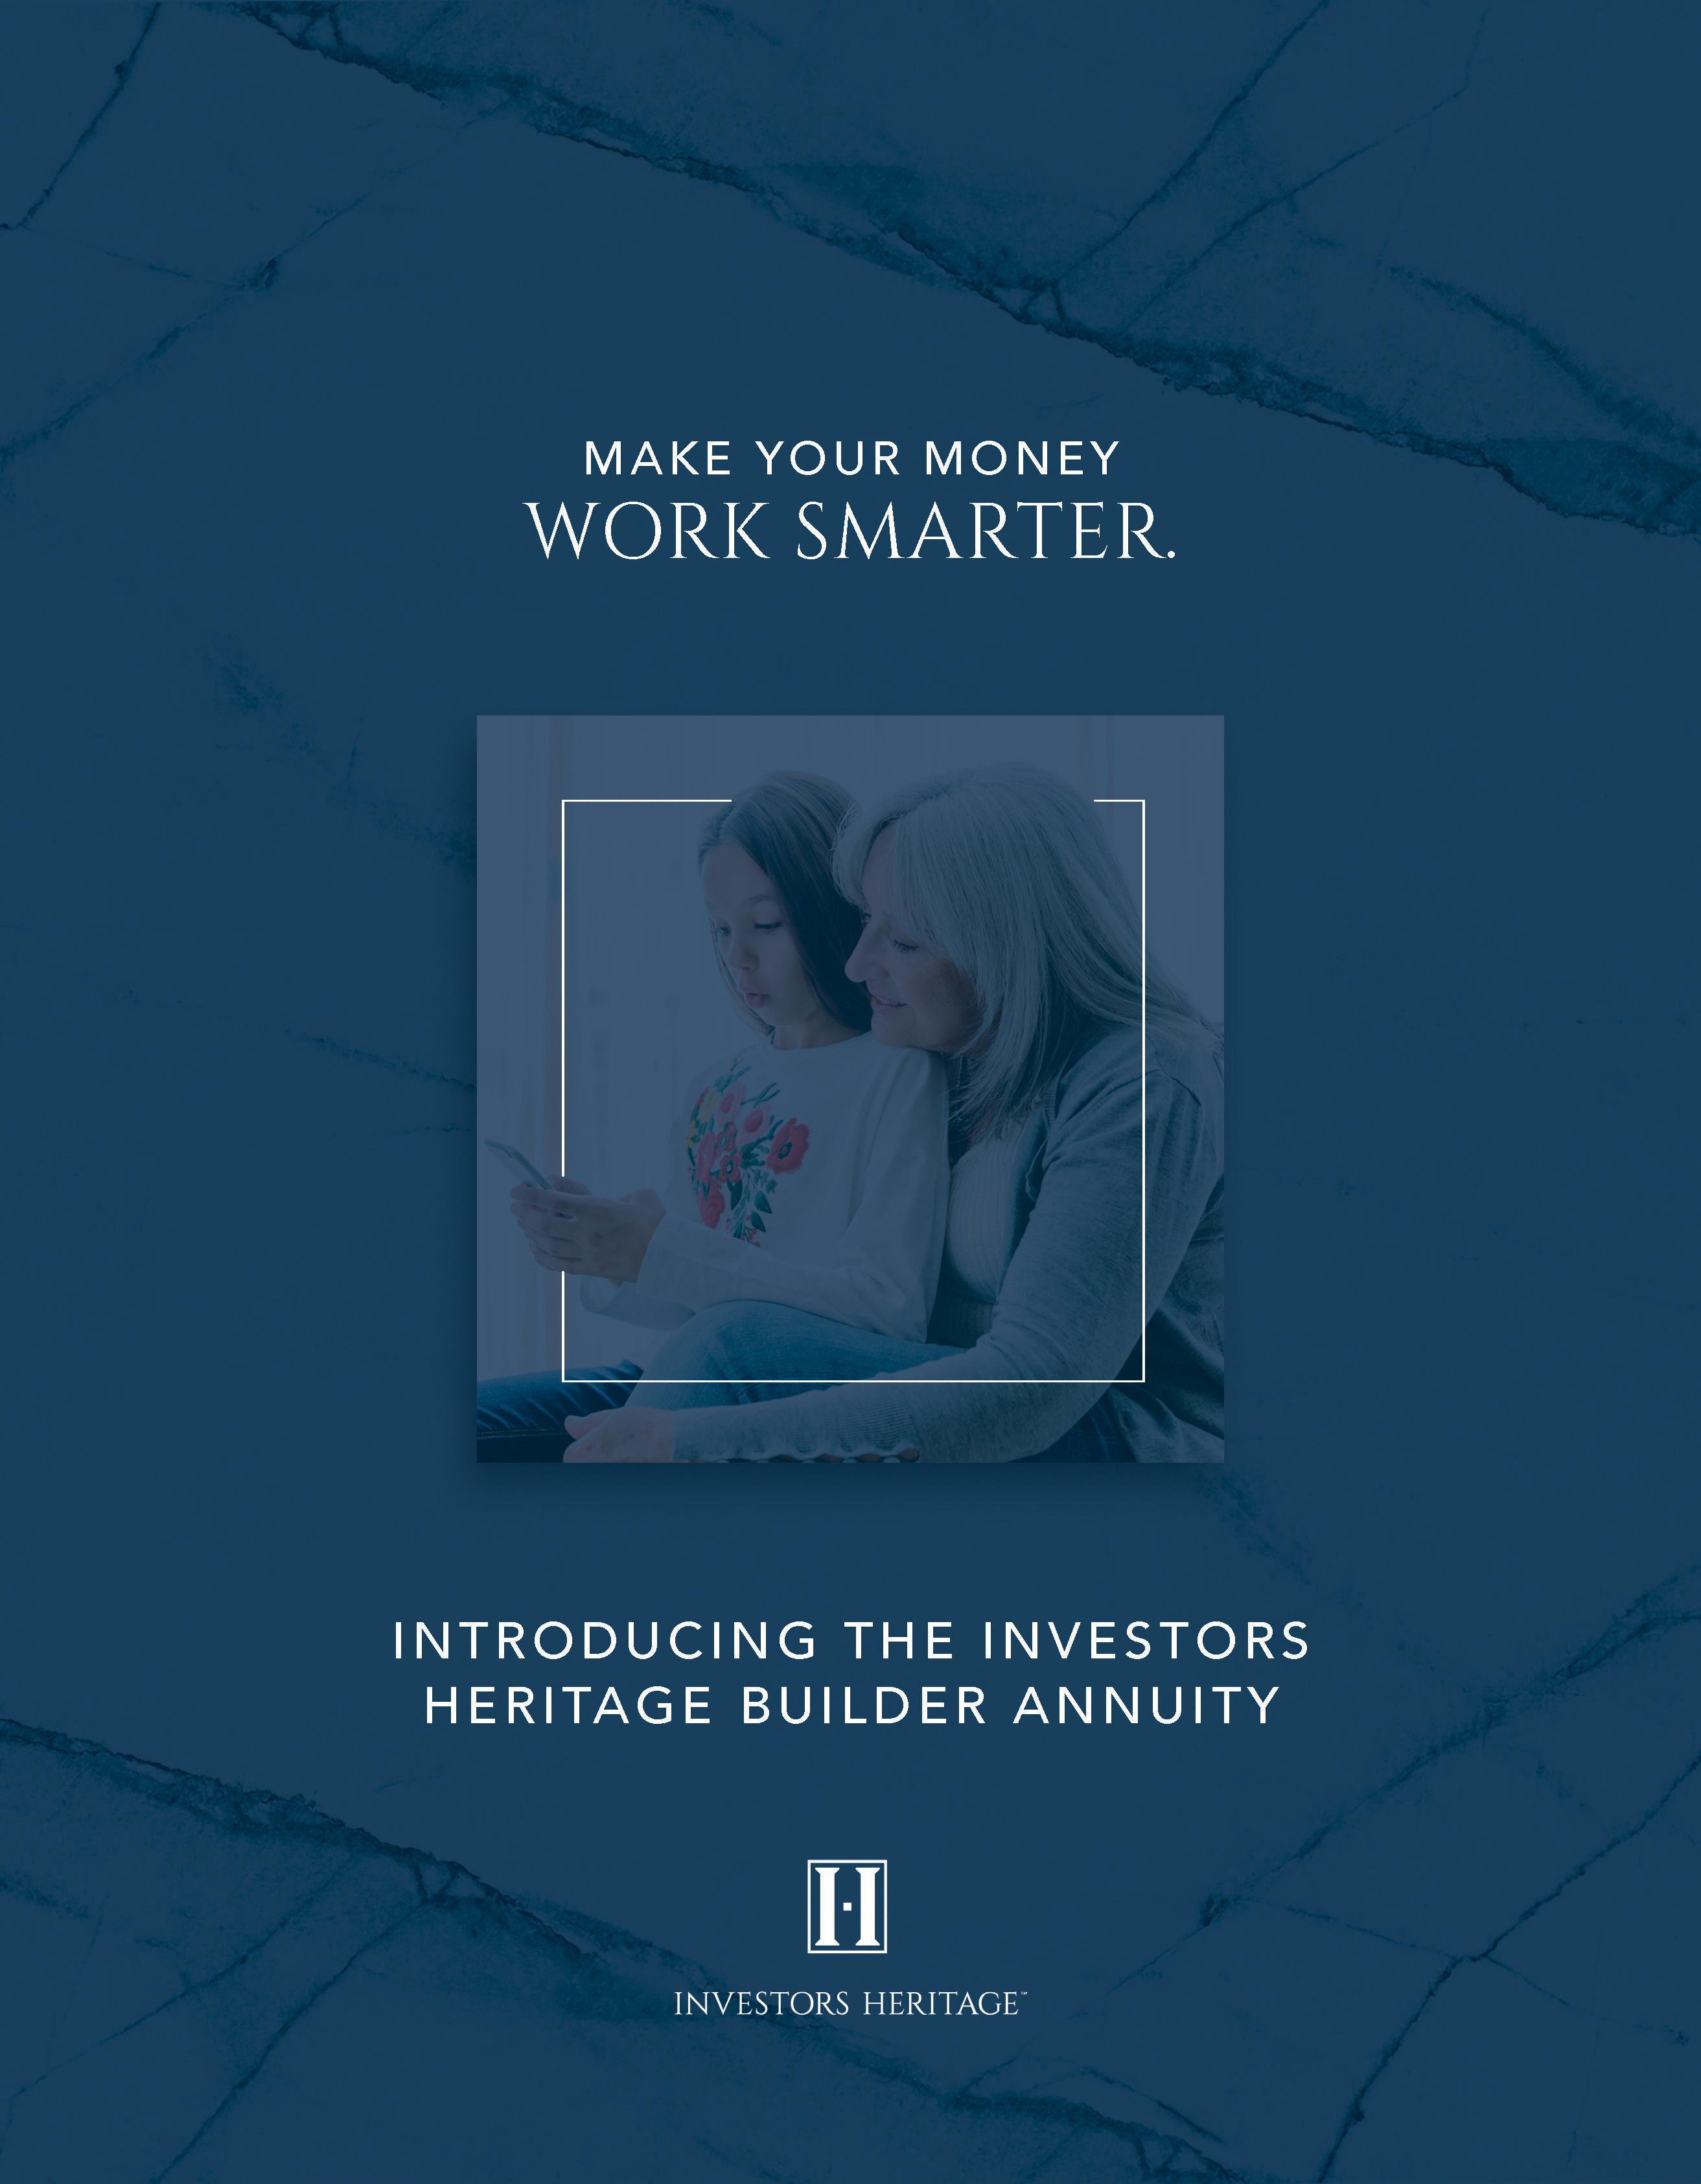 investors heritage enters annuity space with launch of heritage